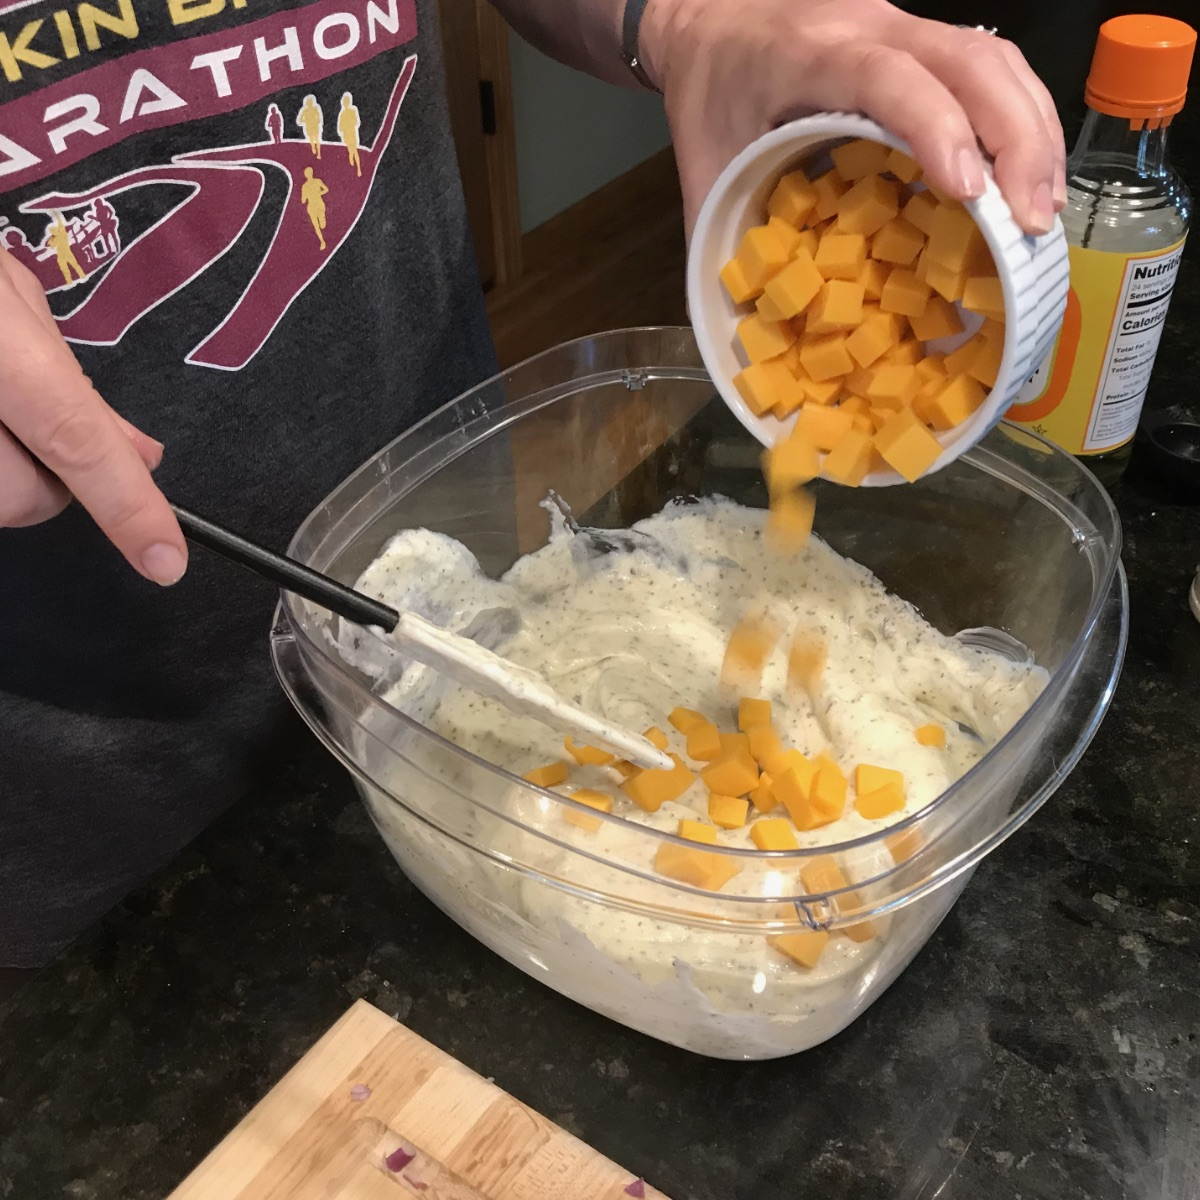 Adding cubed cheese to the pasta salad dressing and mixing to coat thoroughly.